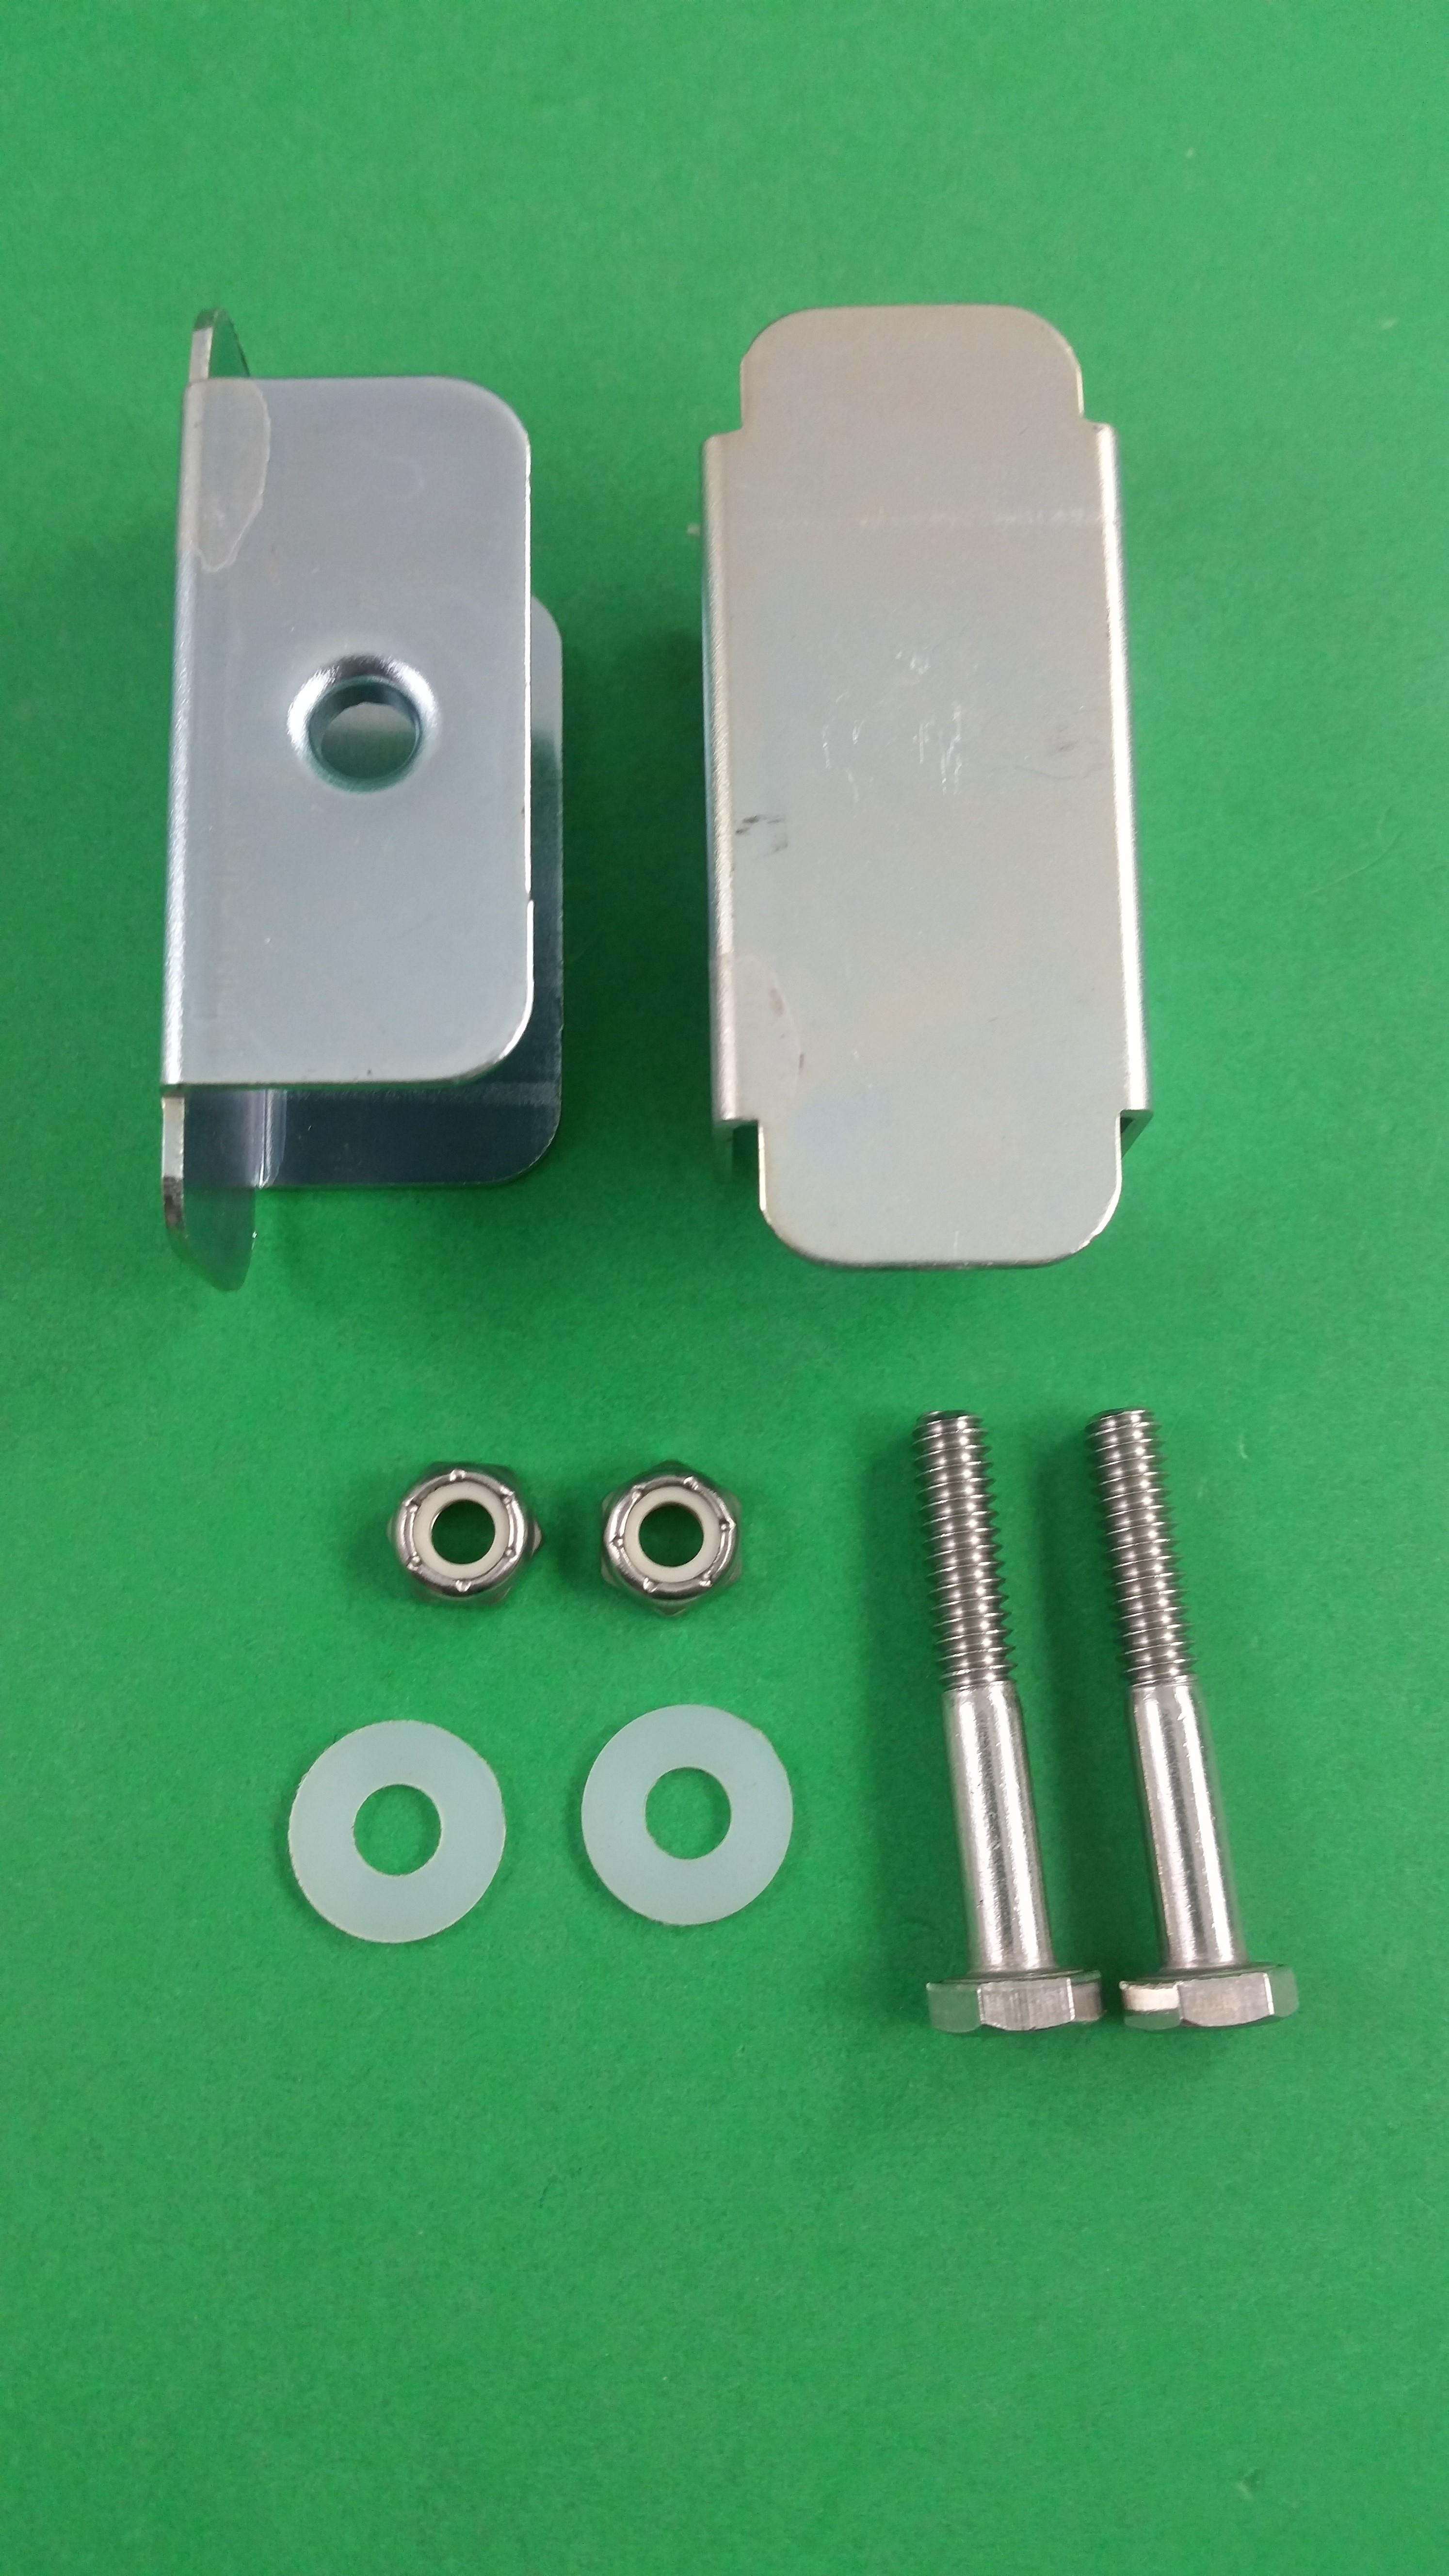 AE Dometic 3107942009 Sunchaser RV Awning Hardware Cap Kit